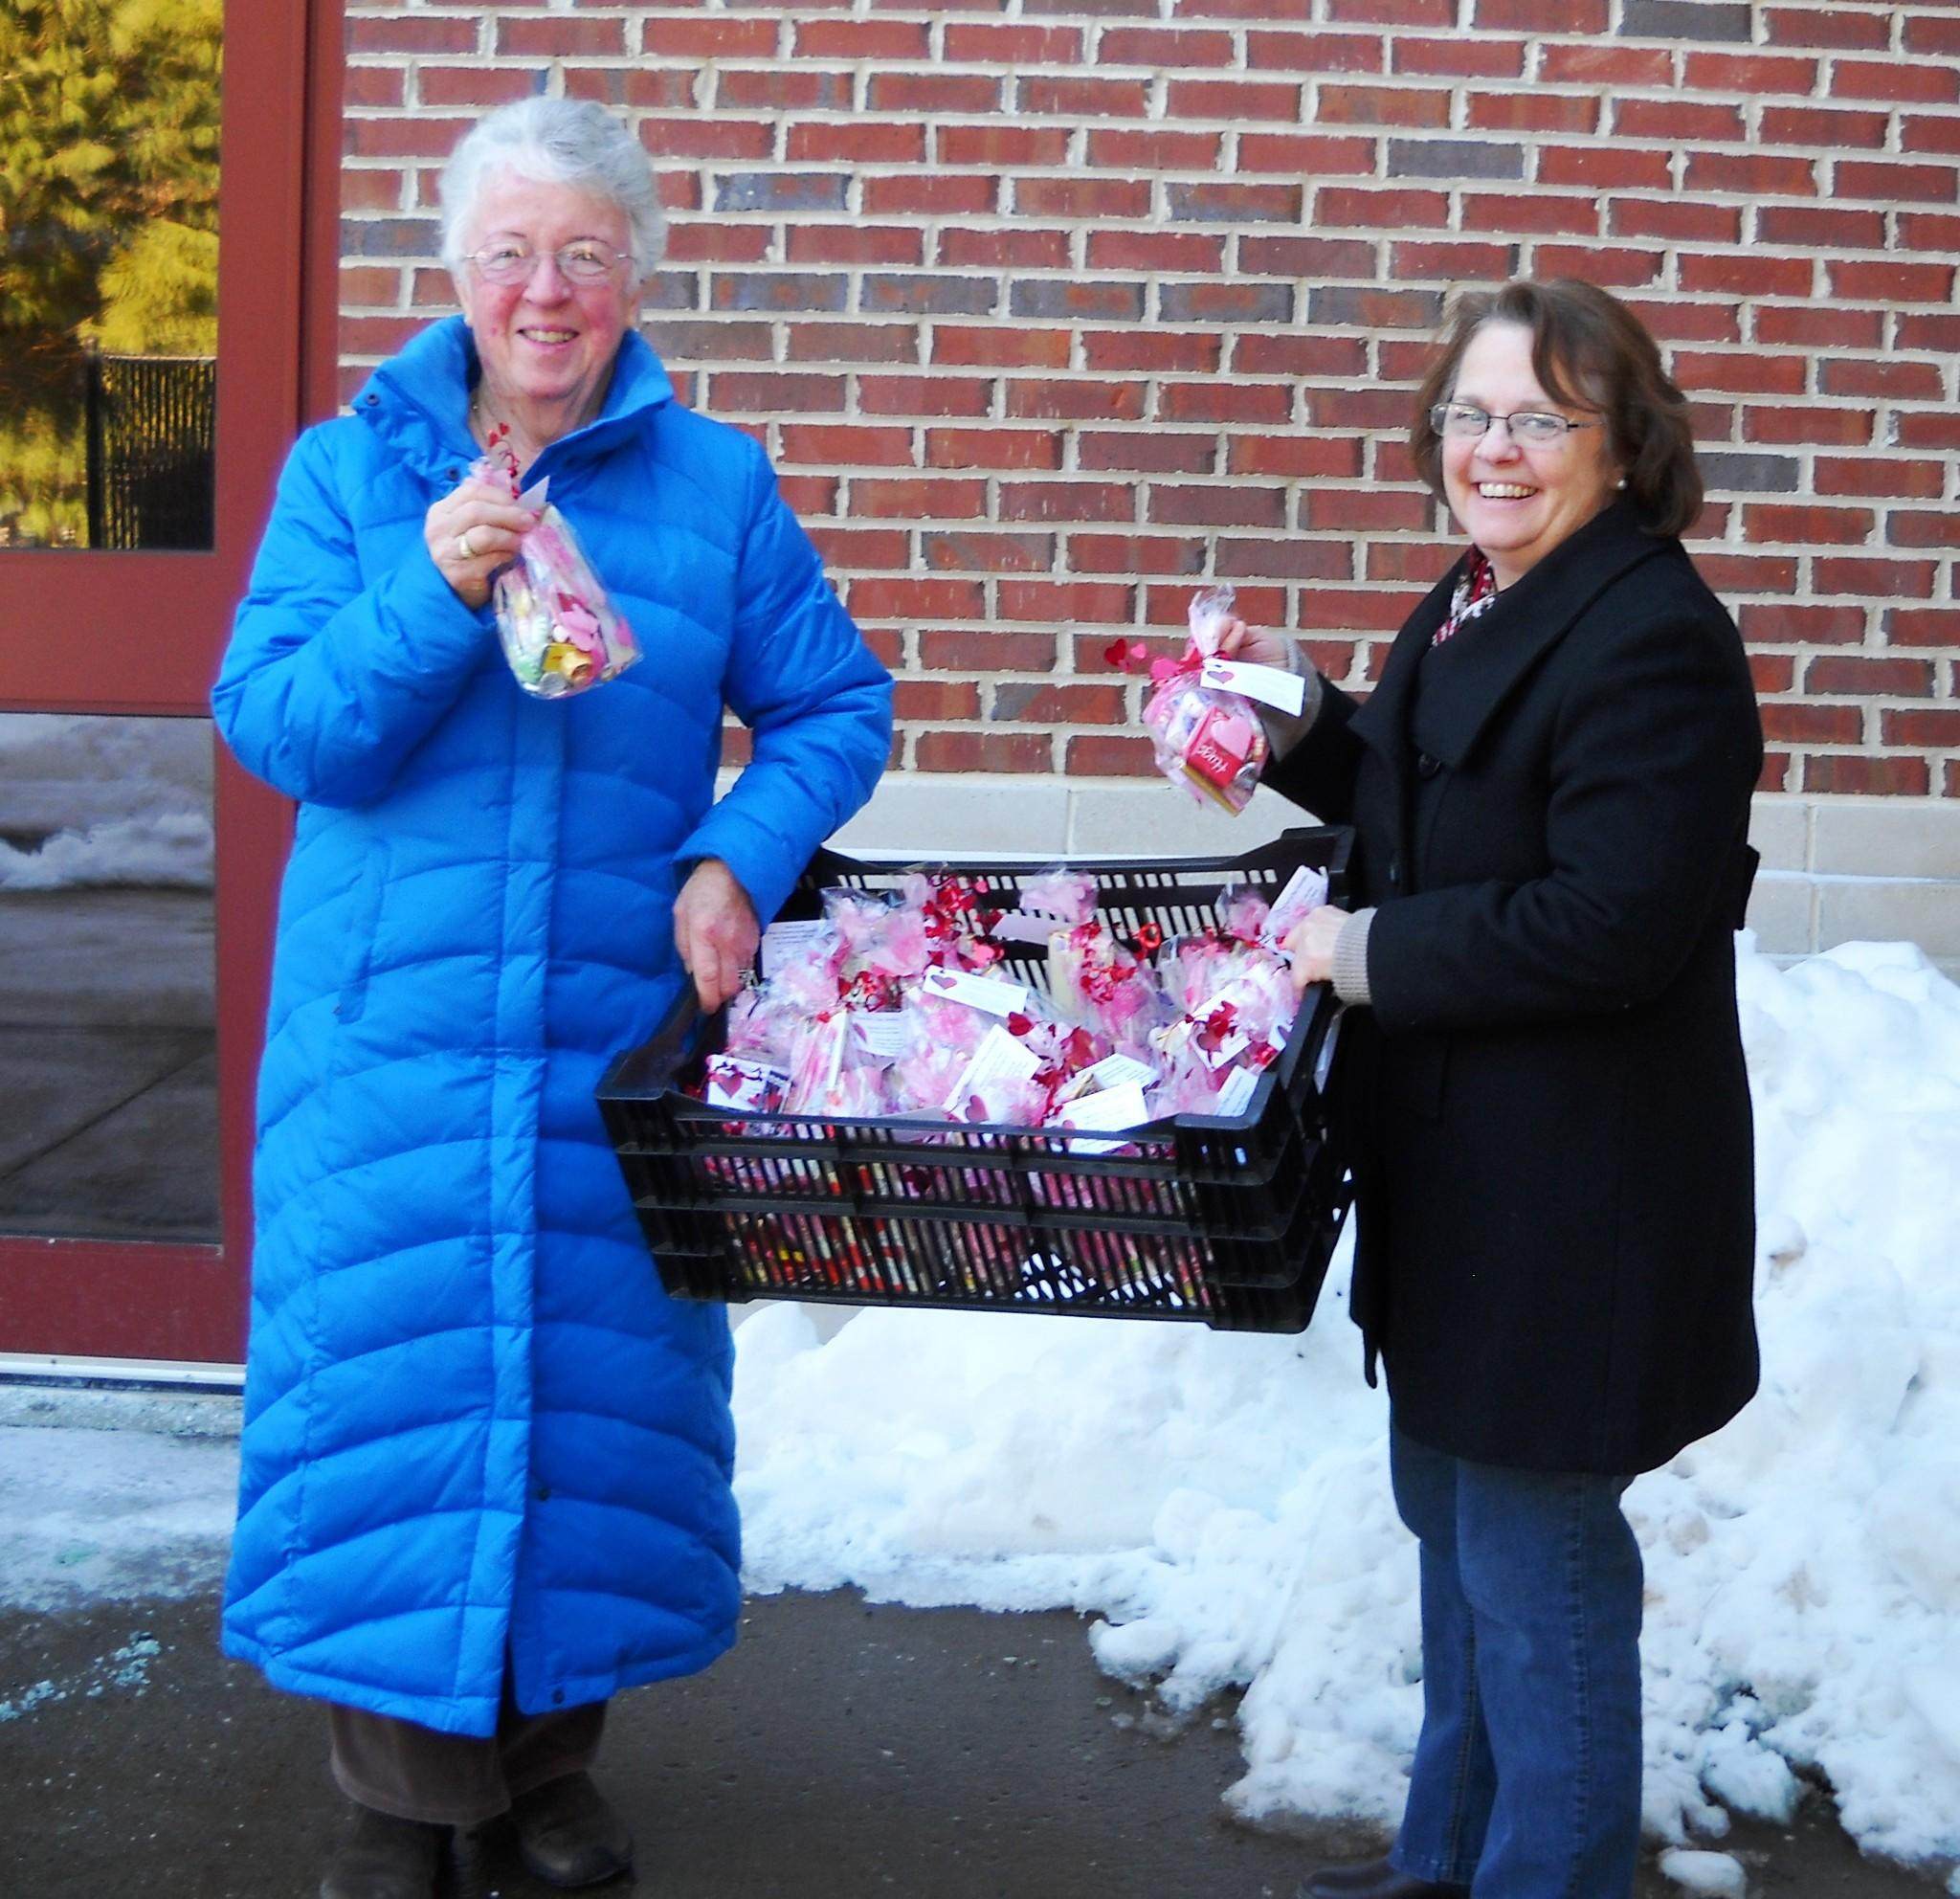 From left to right: Pat Robotham and Diane Clerkin, board members and devoted volunteers for Services for the Elderly of Farmington, joined several other board members and put together lovely Valentine's Day-themed treats for Farmington seniors.